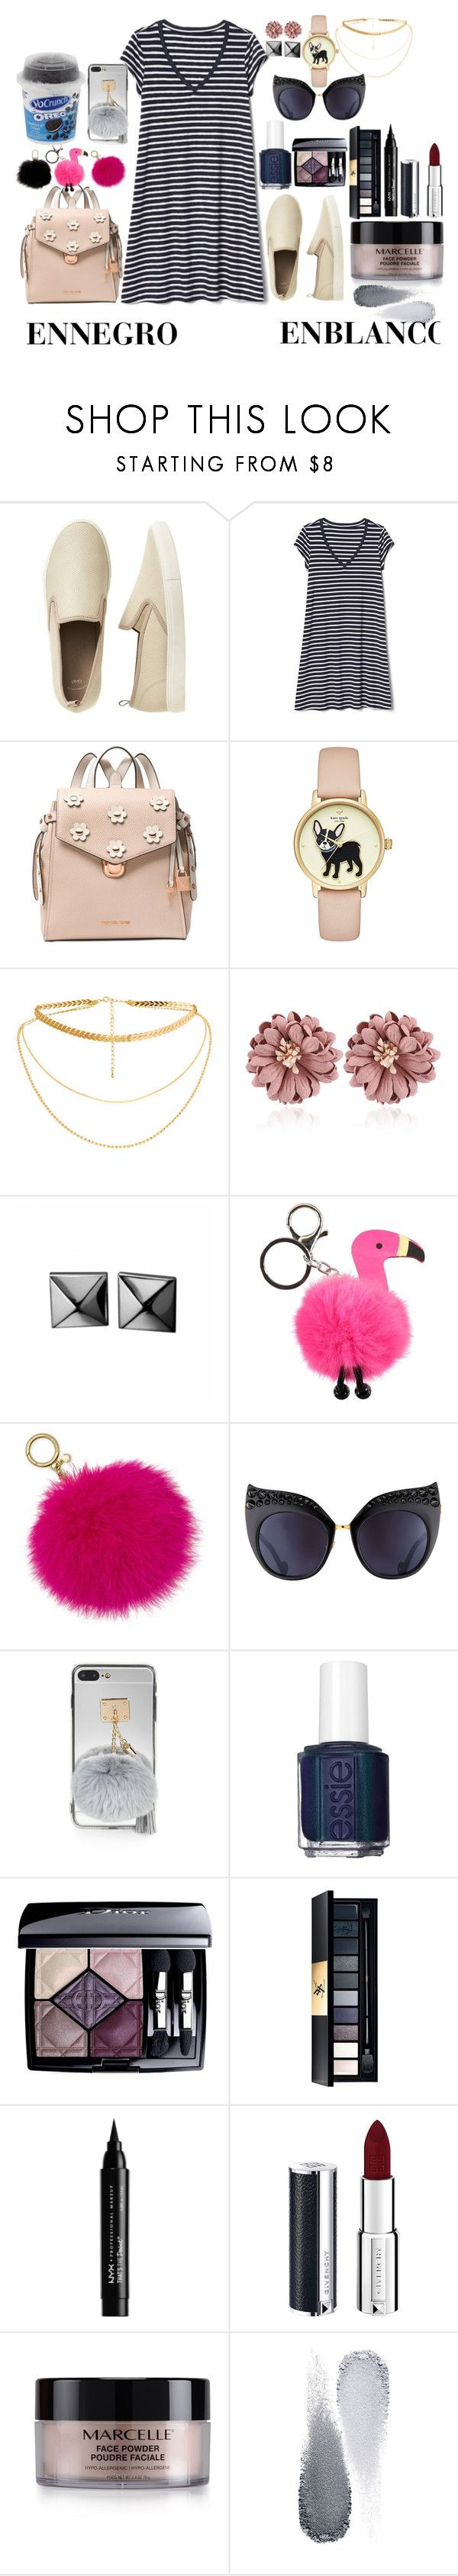 """Untitled #141"" by amor-de-pandicornios on Polyvore featuring Gap, Michael Kors, Waterford, Molo, Anna-Karin Karlsson, Essie, Christian Dior, John Lewis, NYX and Givenchy"